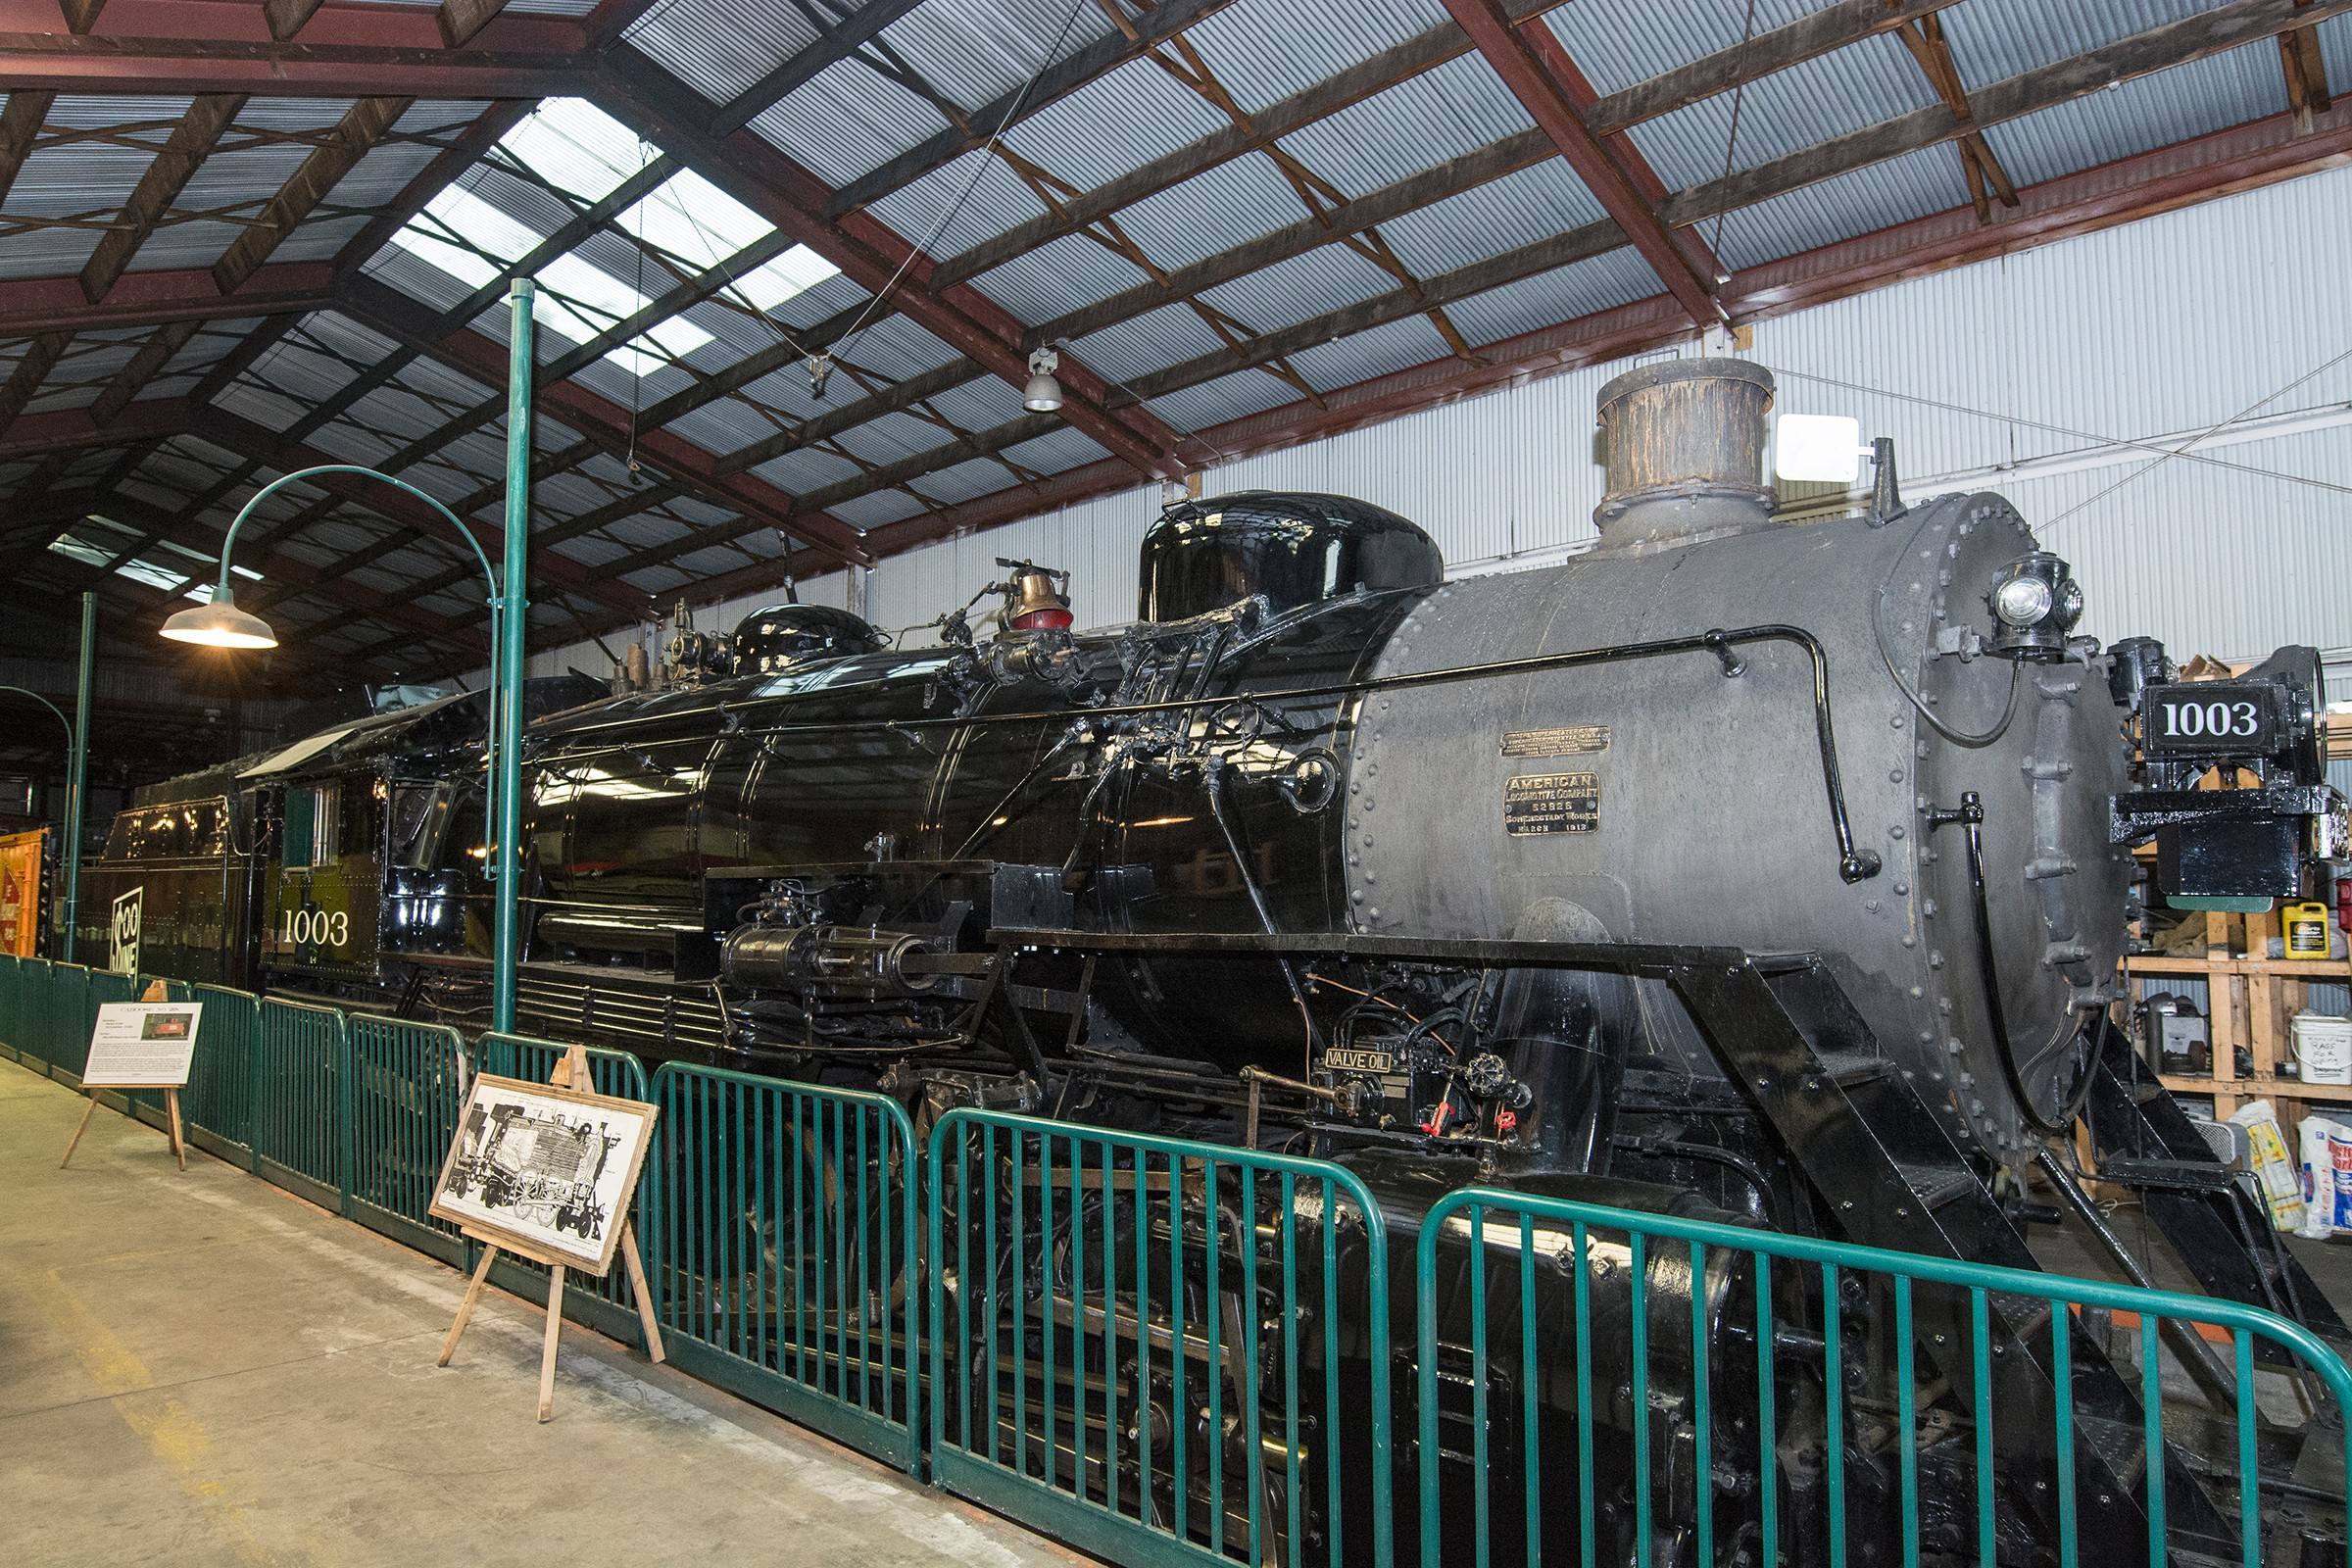 A 250-ton train, built in 1913, is on display at the museum. It was restored by the Steam Locomotive Heritage Association.